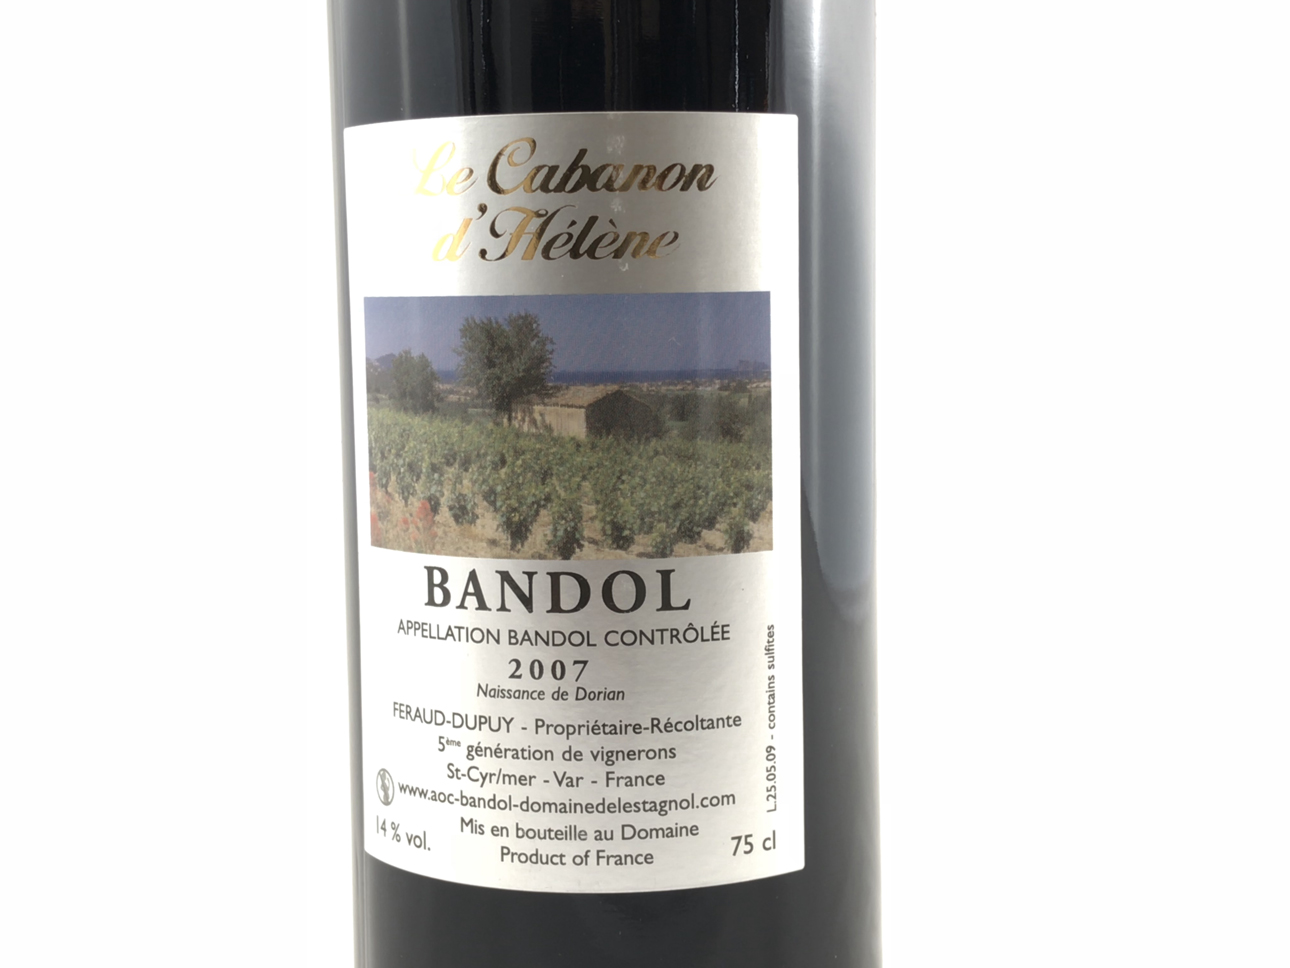 le cabanon d h l ne vin de bandol rouge 2007 domaine de l 39 estagnol sandrine f raud. Black Bedroom Furniture Sets. Home Design Ideas